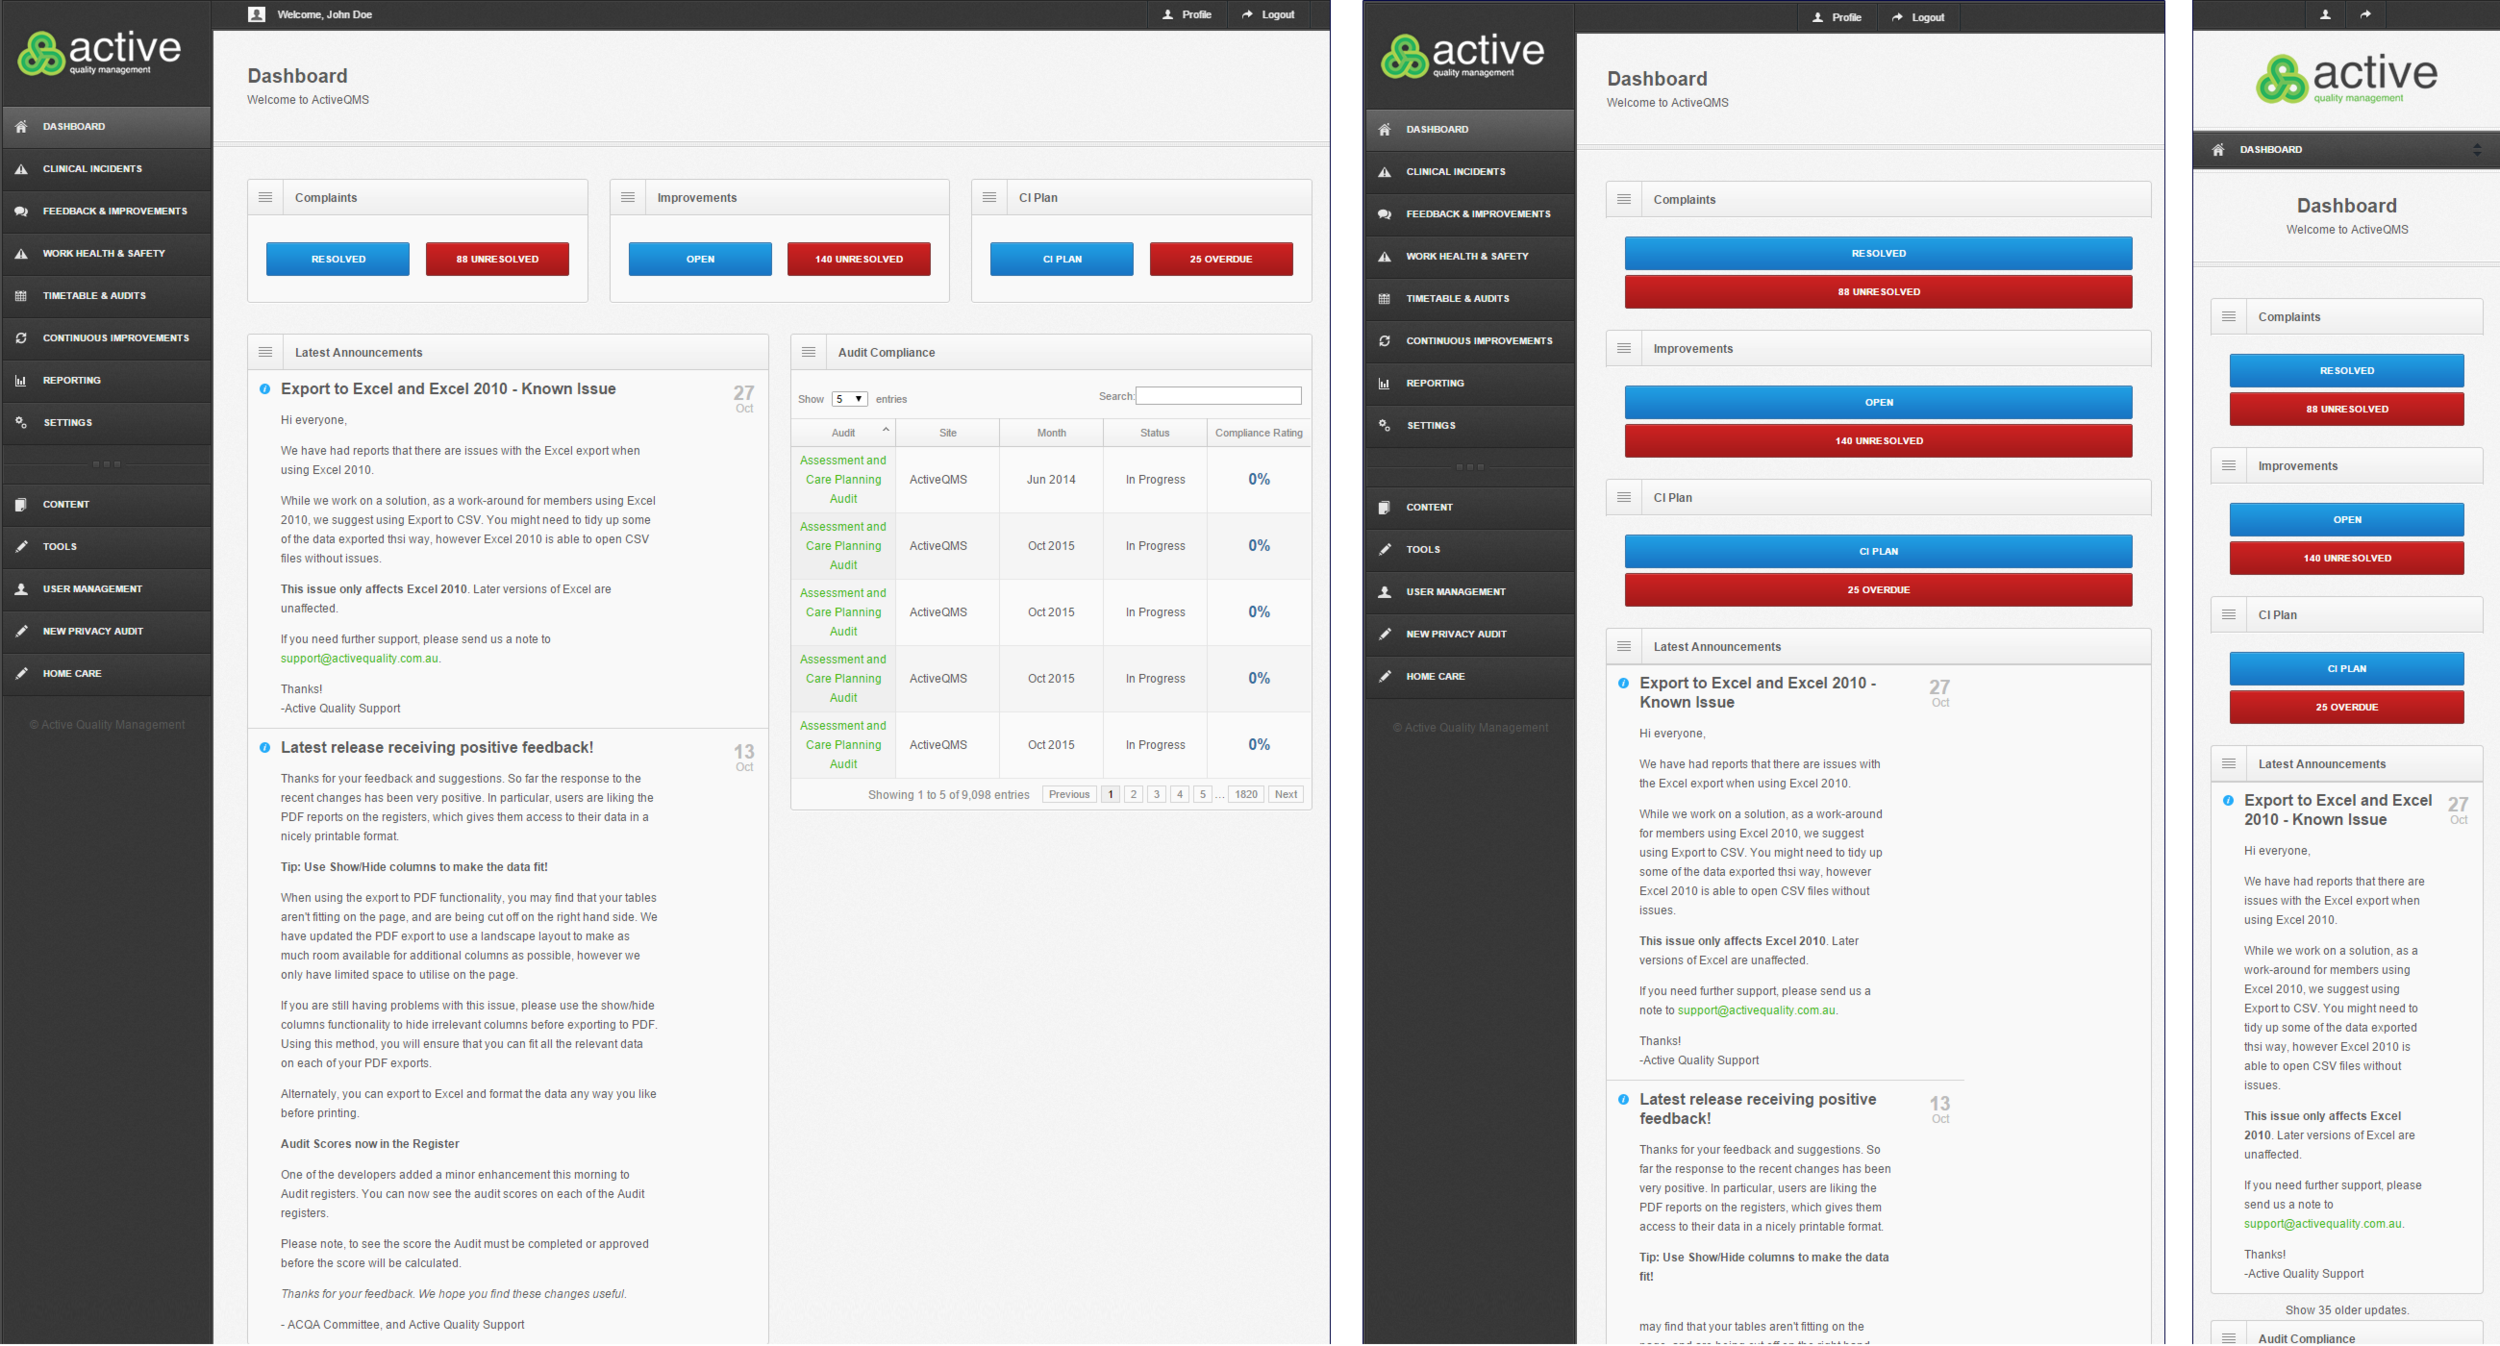 aqms-dashboard.png